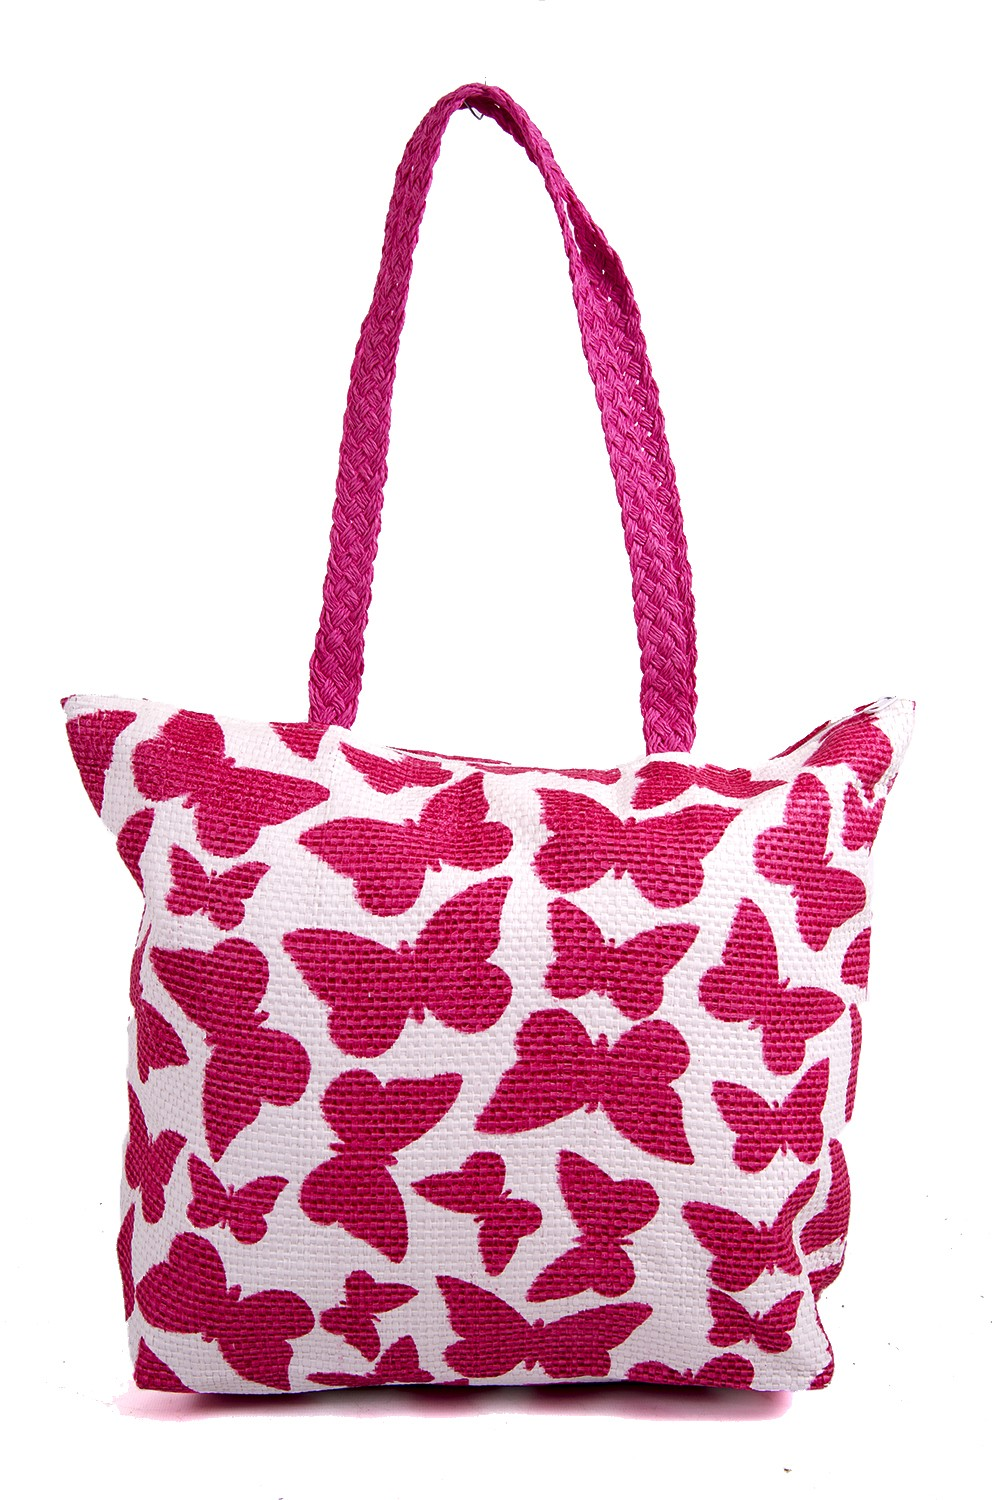 BB973 PINK SUM BAG WTH ROPE HANDLE WHITE BACK